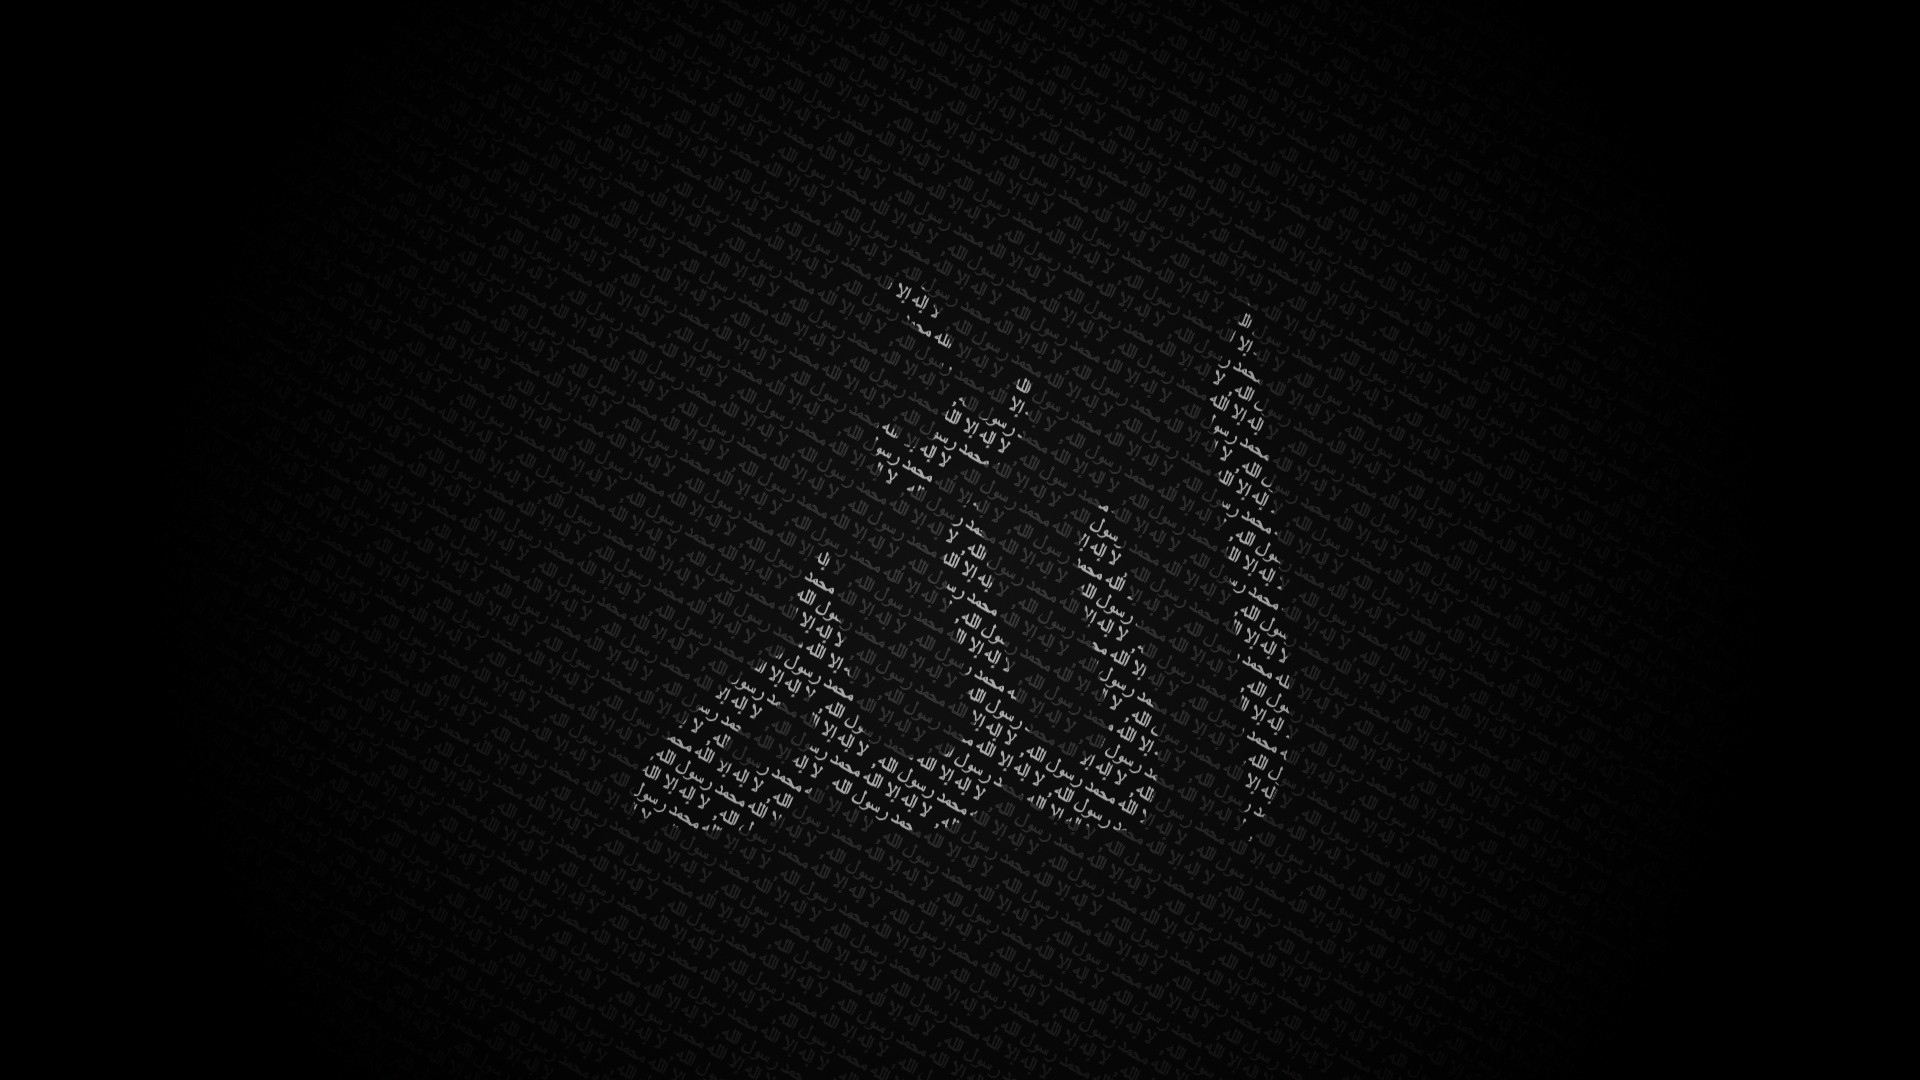 Allahs Name Black and White HD Wallpaper Unique HD Wallpapers 1920x1080